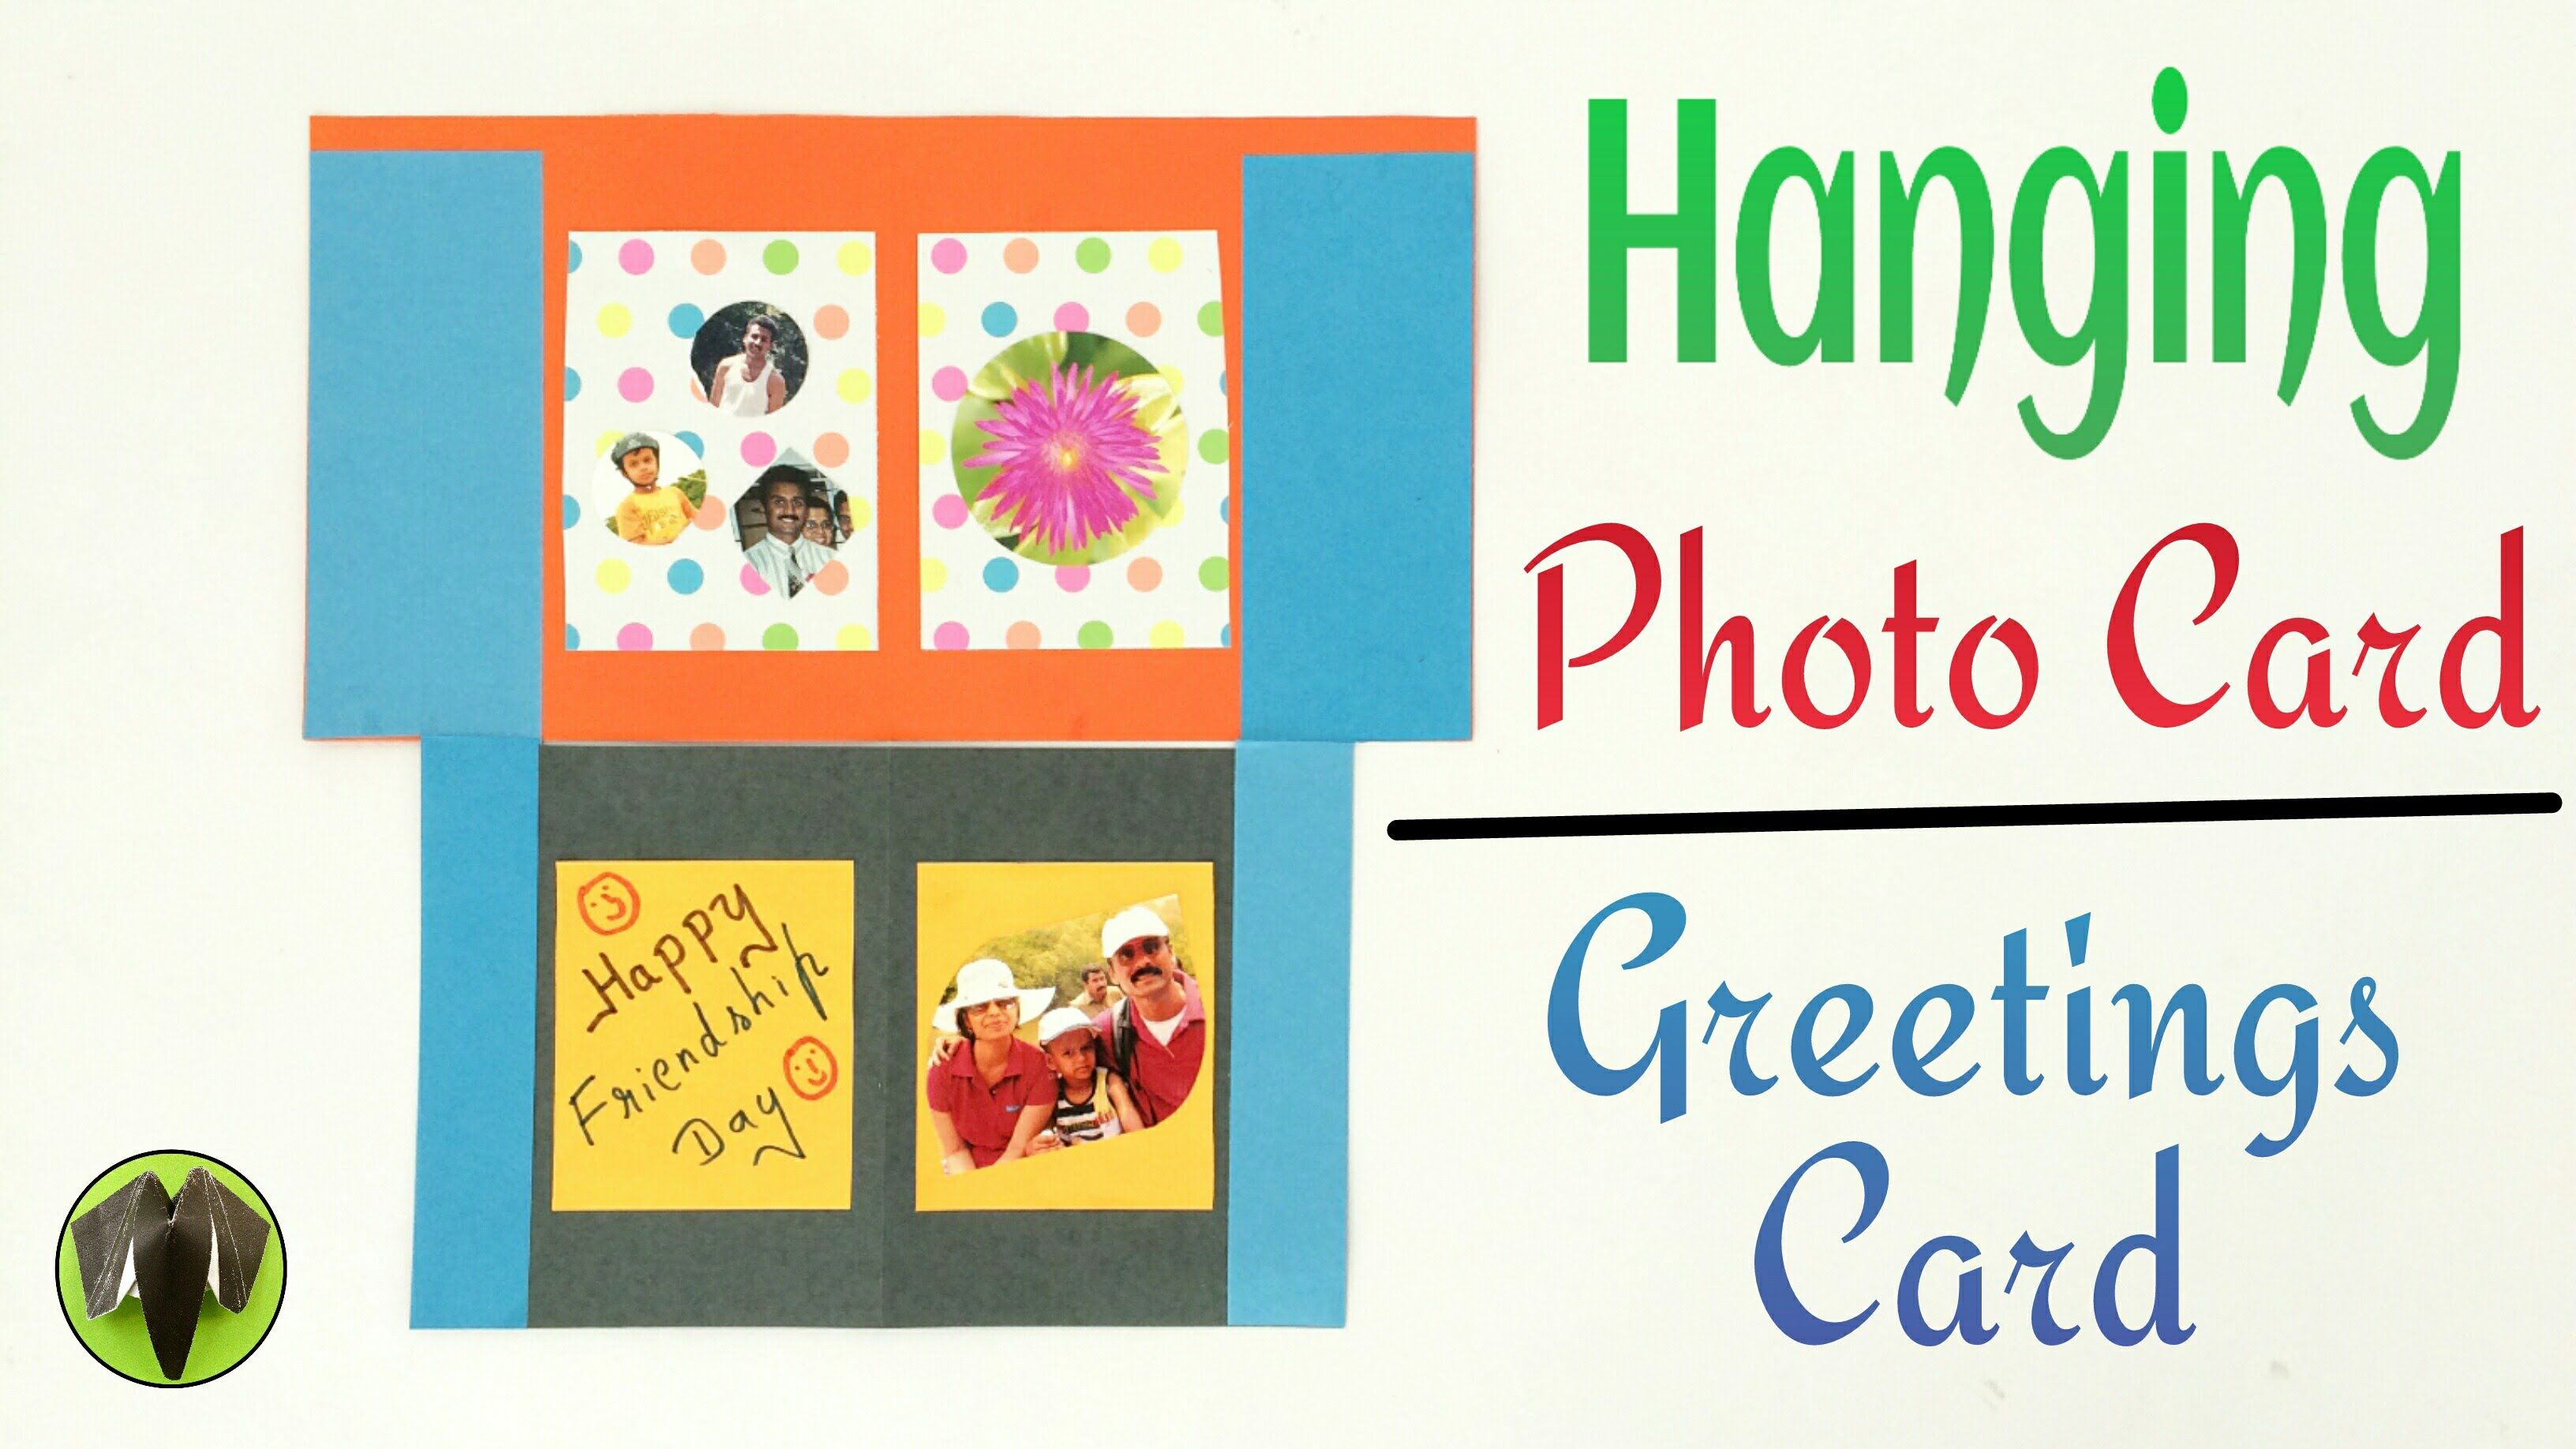 Tutorial To Make Hanging Photo Card Greeting Card For Friendship